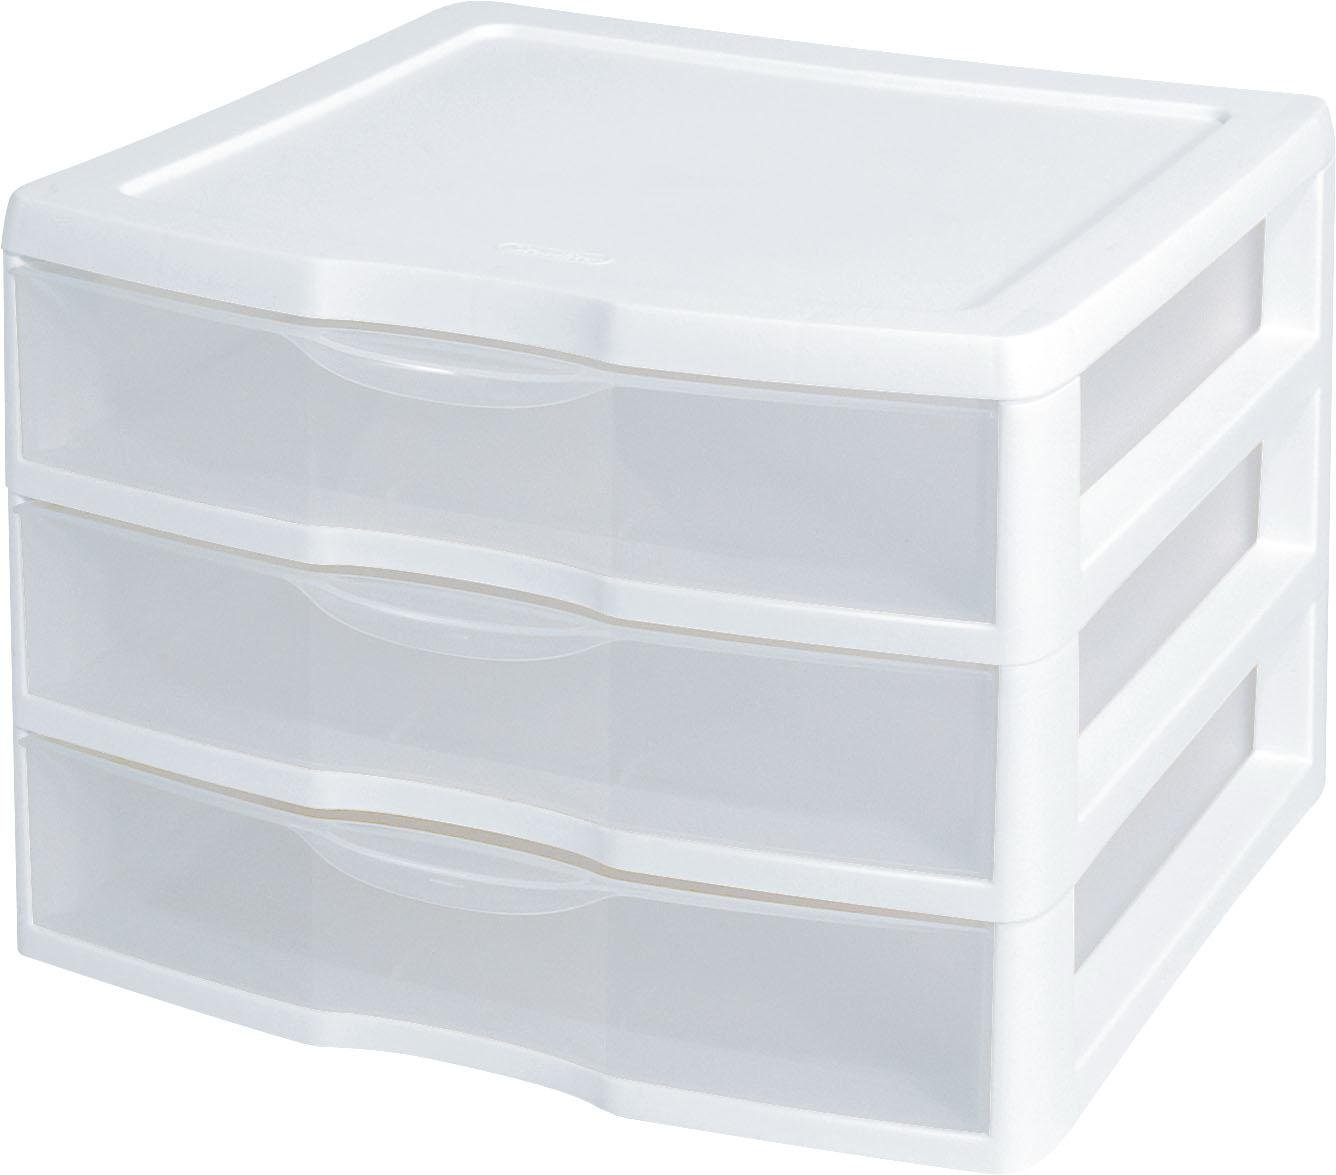 Sterilite-3-drawer-storage-unit-legal-size.jpg